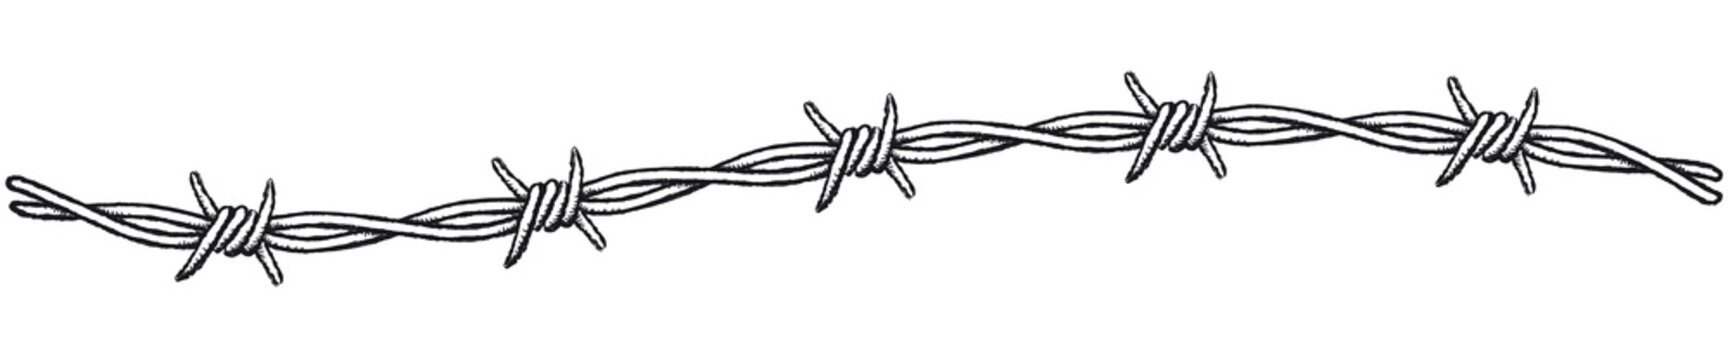 Barbed wire border, wavy. Clip-art illustration of a barbed wire border on a white background.